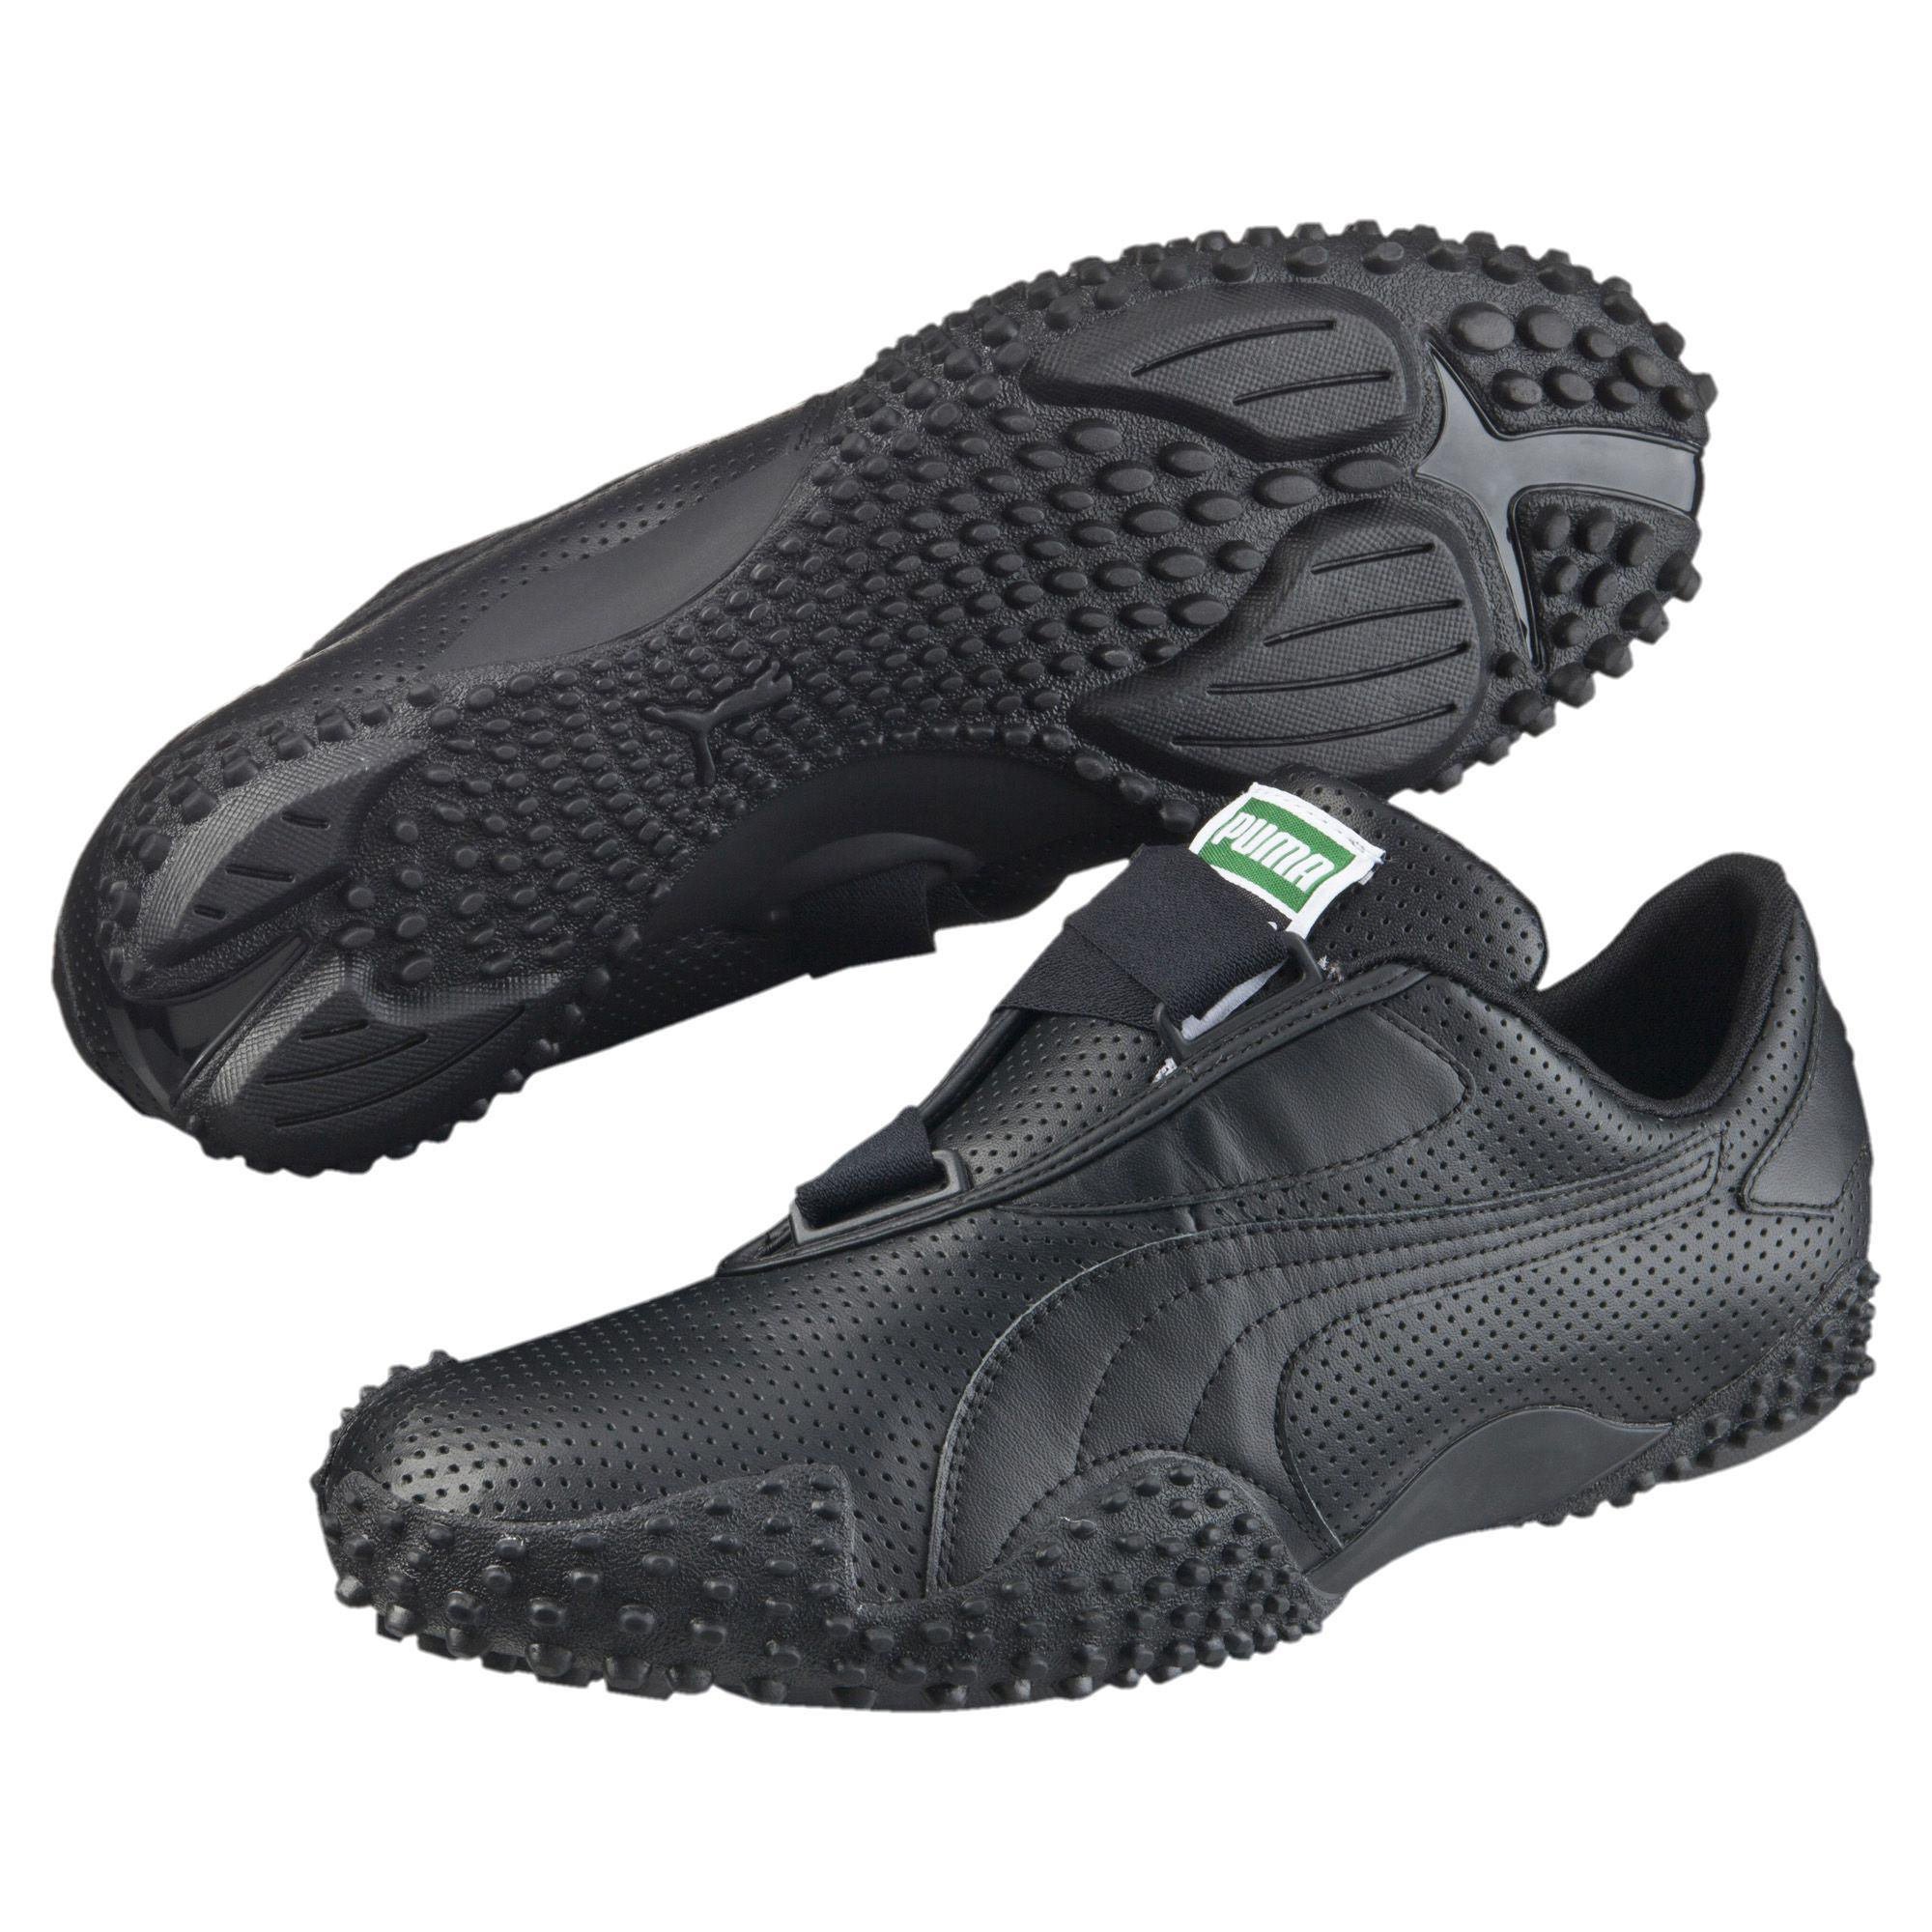 PUMA Mostro Perf Leather in Black for Men - Lyst